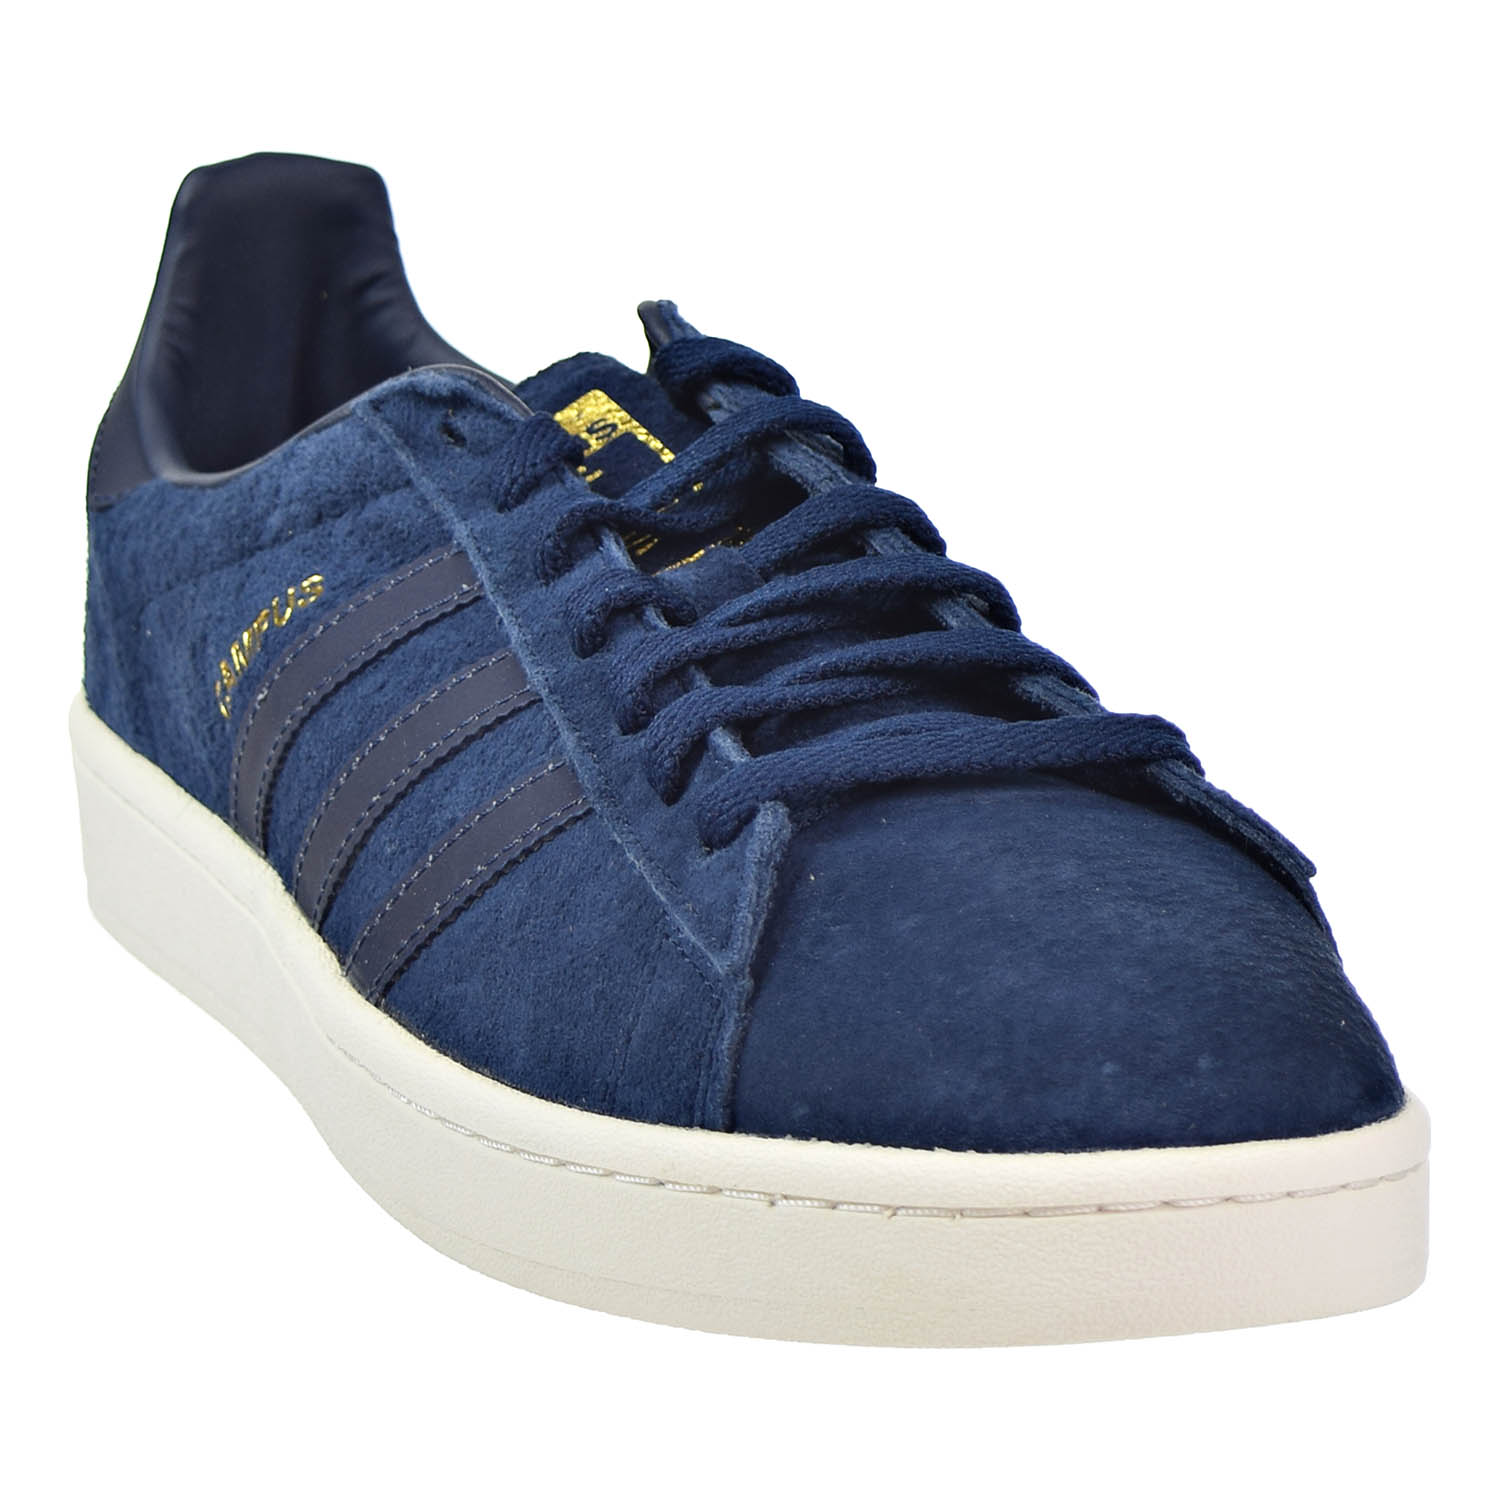 510a13abaa6793 Adidas Campus Mens Shoes Collegiate Navy Reflective Gold Metallic bz0073